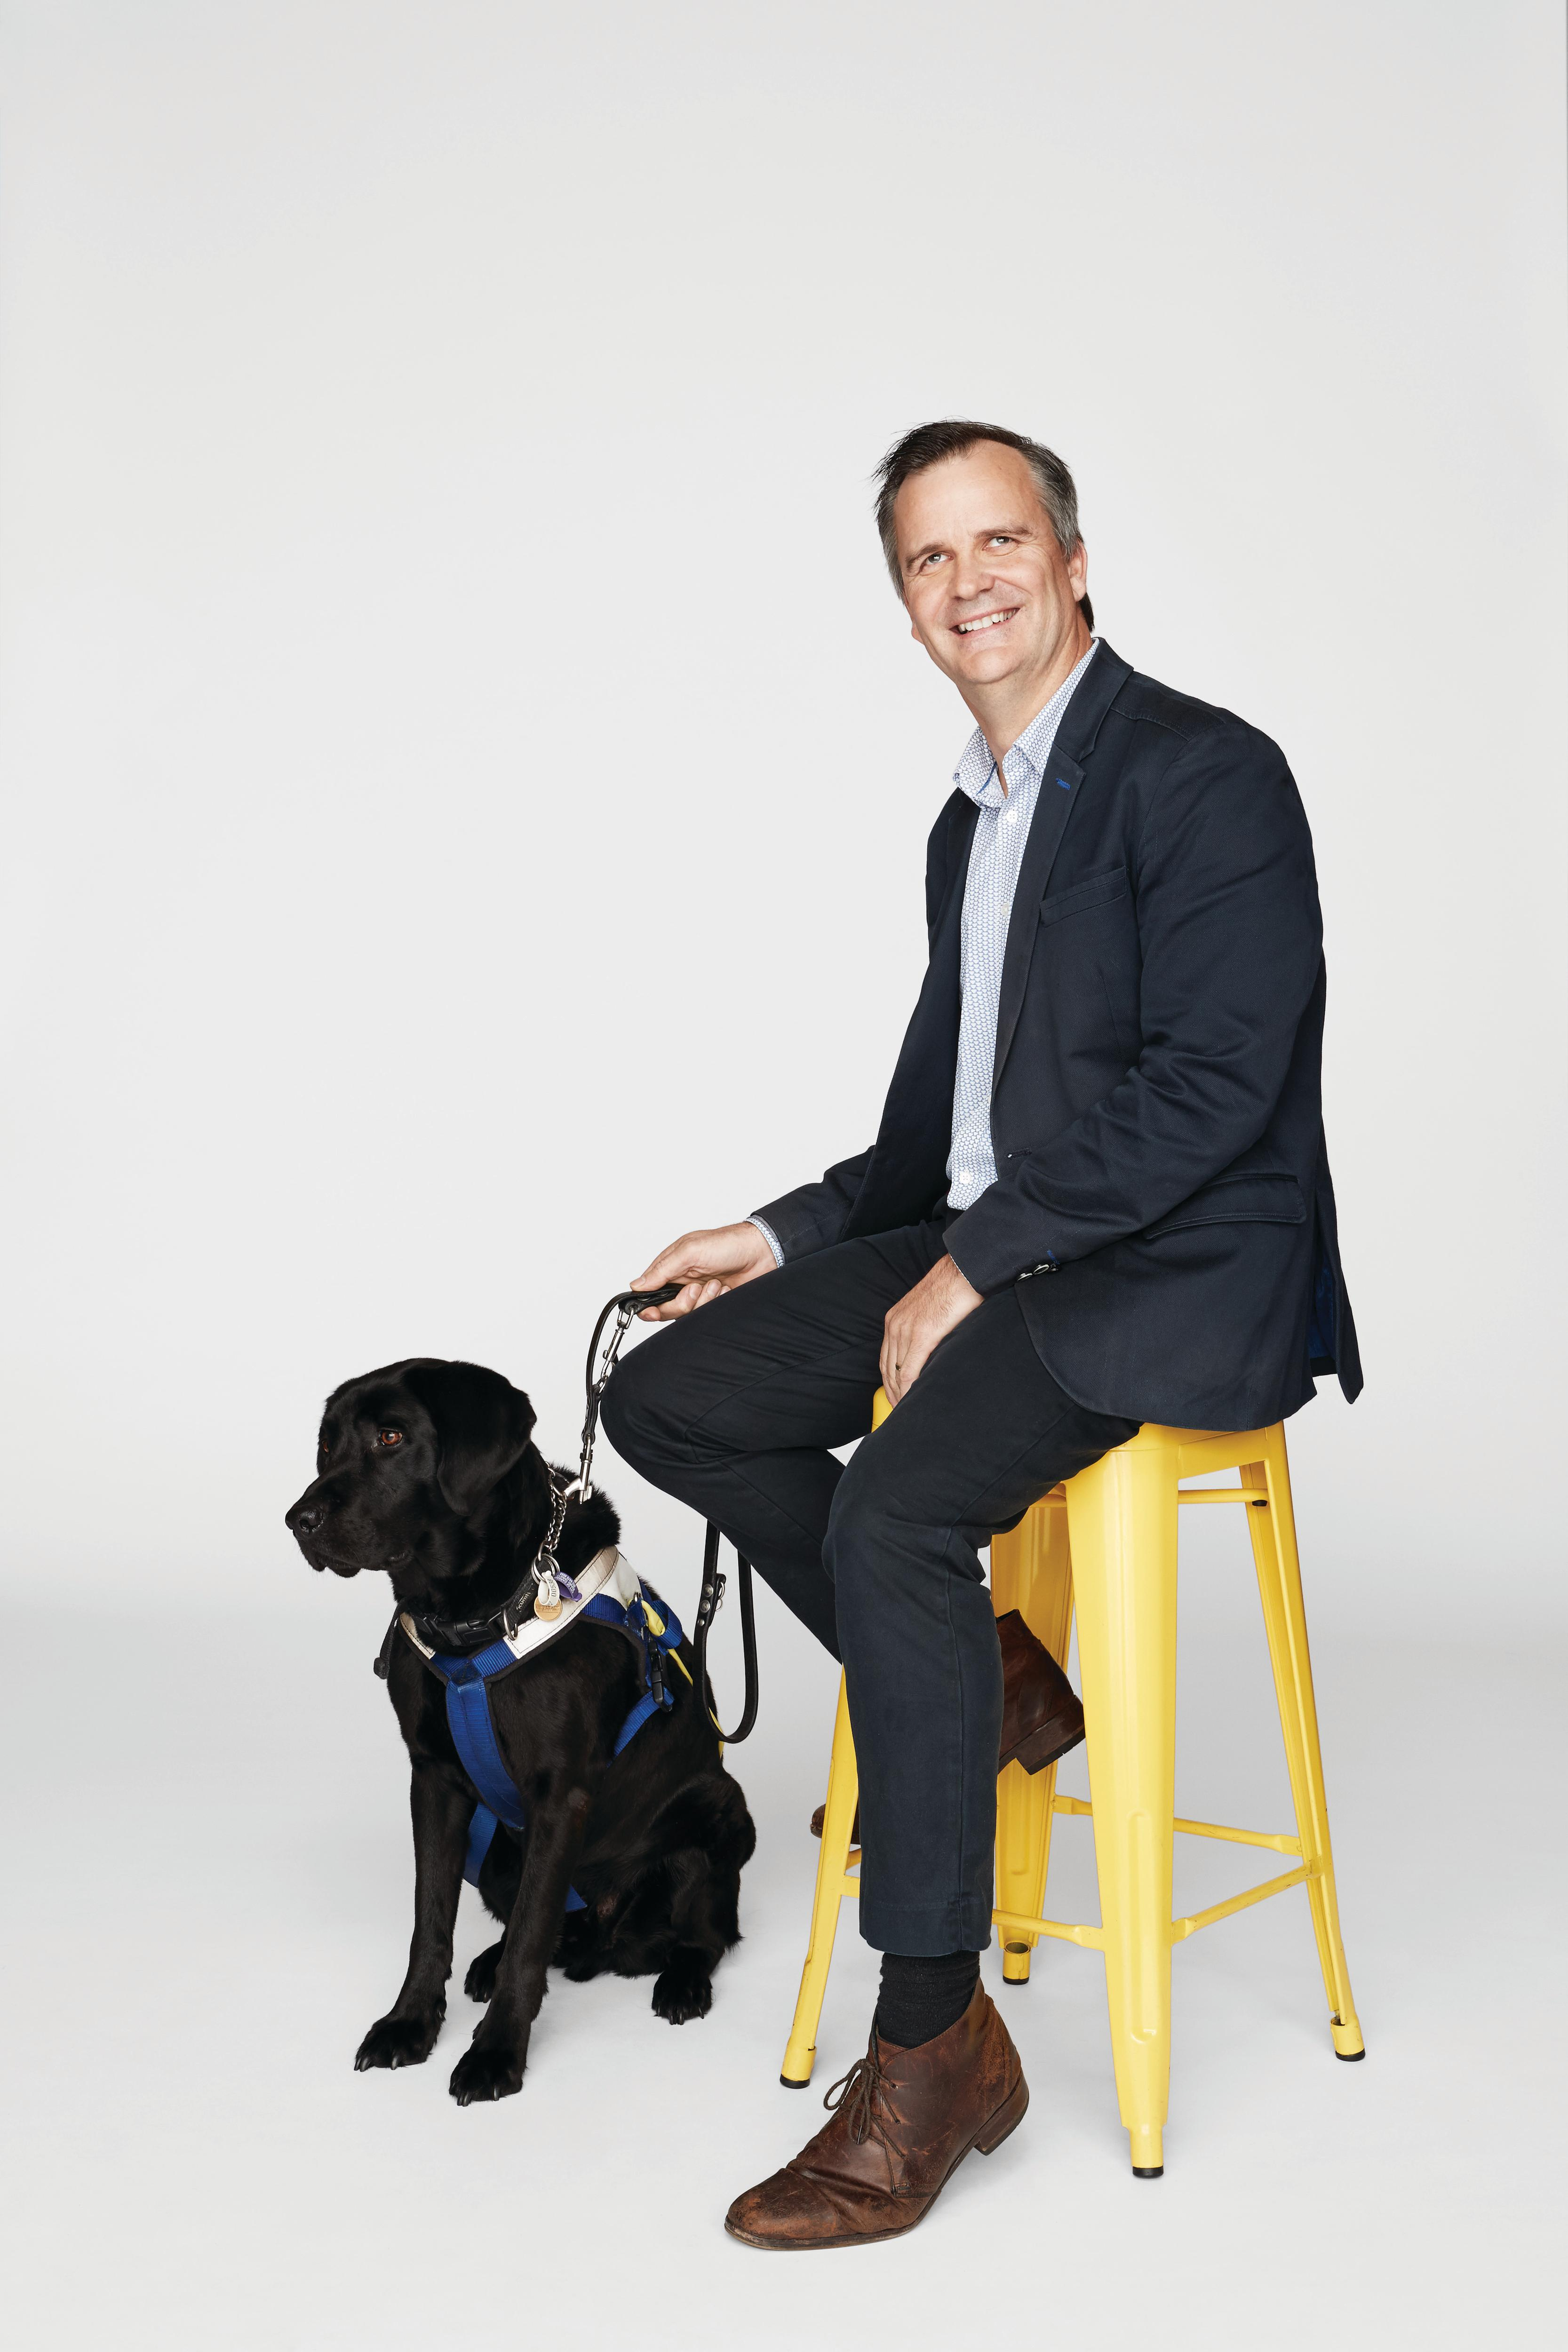 Chris Edwards sits on a stool while his Seeing Eye Dog, Odie, rests at his feet.